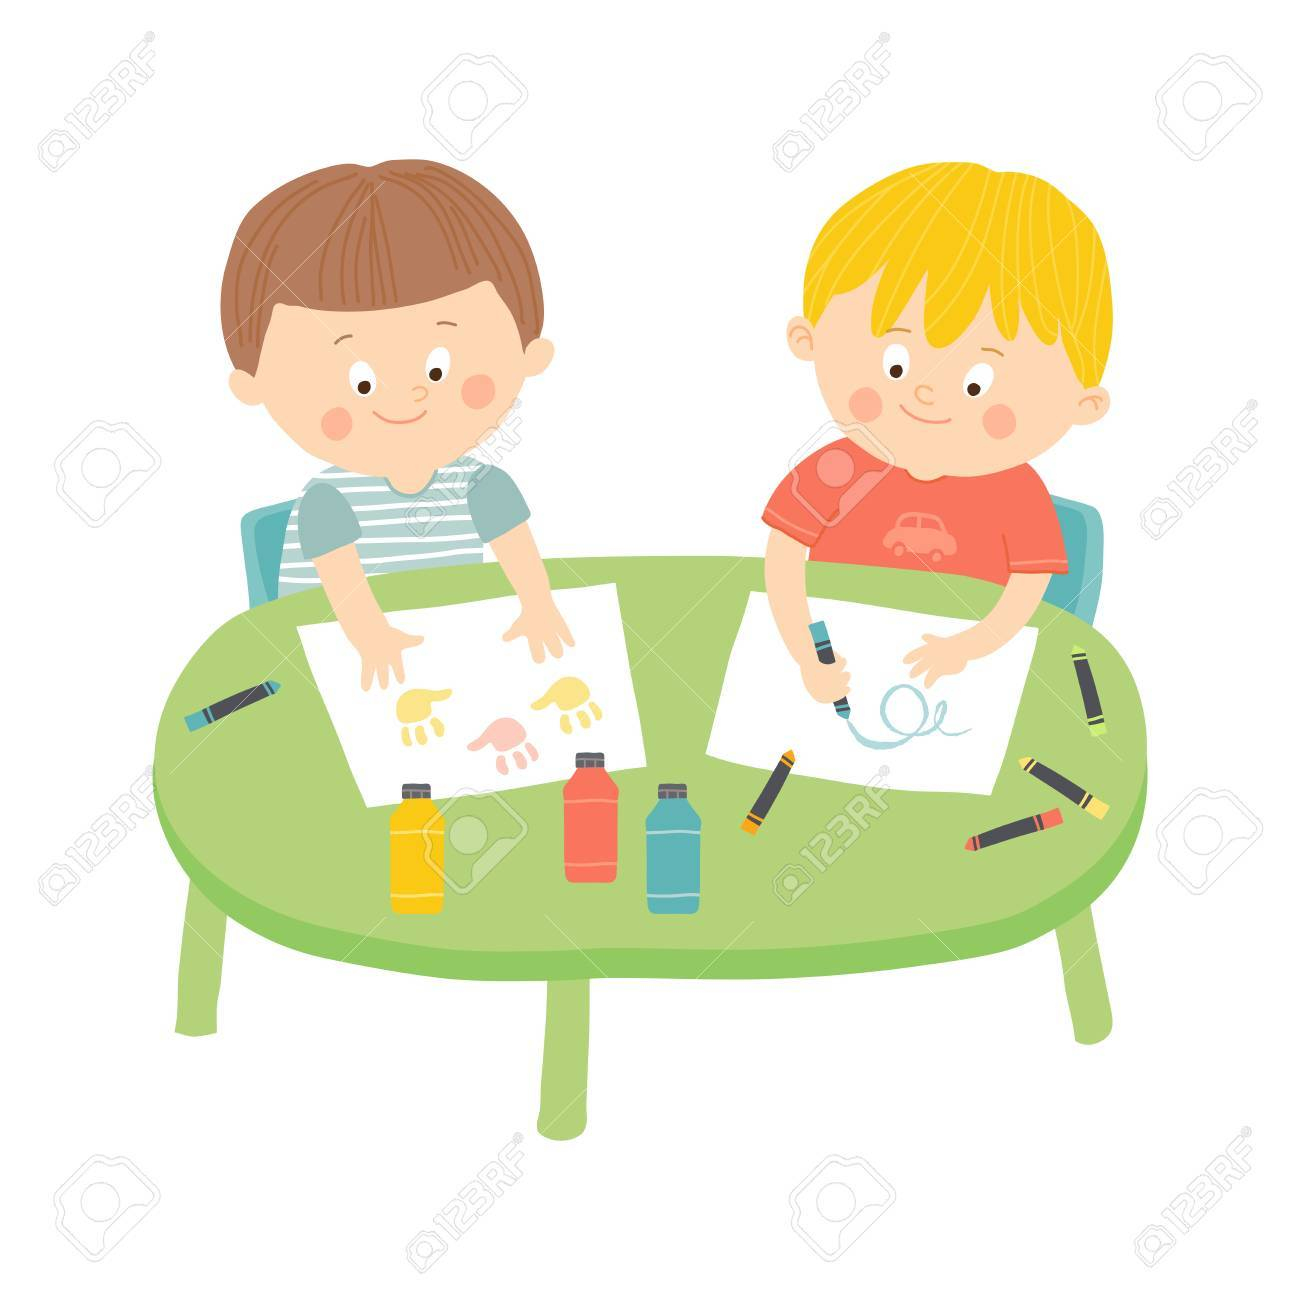 hight resolution of children drawing in art class stock vector 69431000